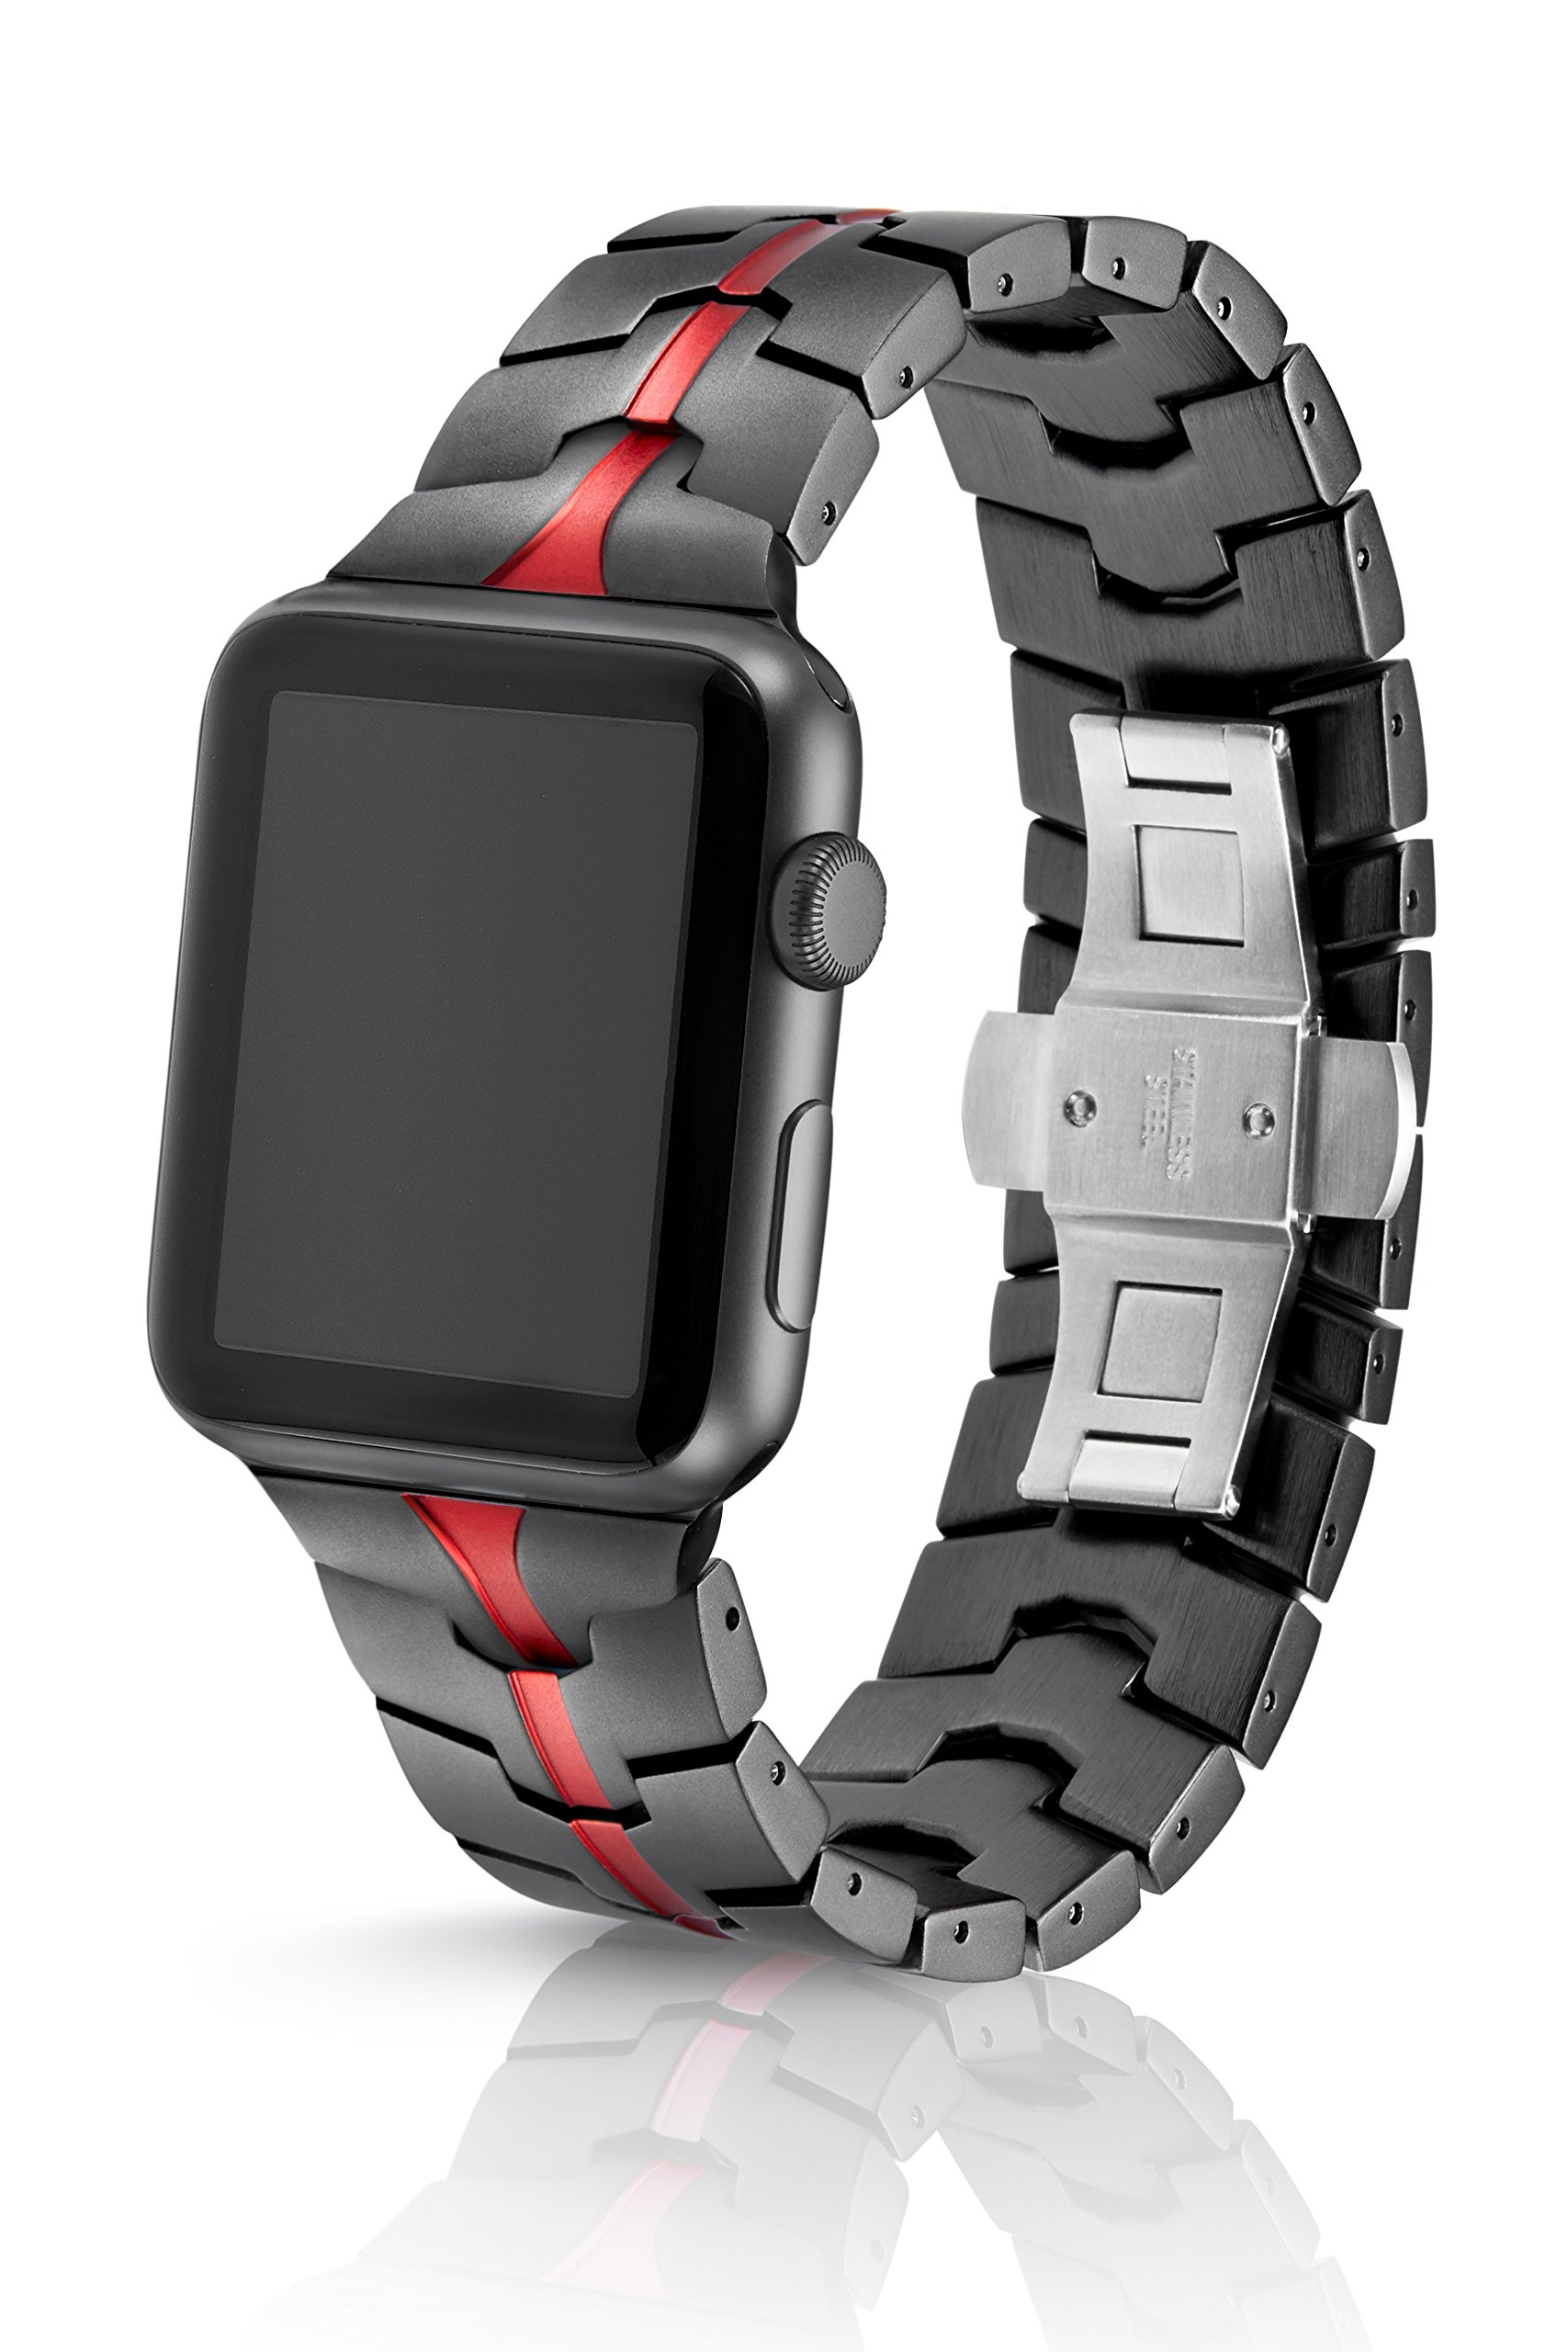 42mm JUUK Ruby Grey Vitero Premium Apple Watch band, made with Swiss quality using aircraft grade hard anodized 6000 series aluminum with a solid stainless steel butterfly deployant buckle (Grey Red)